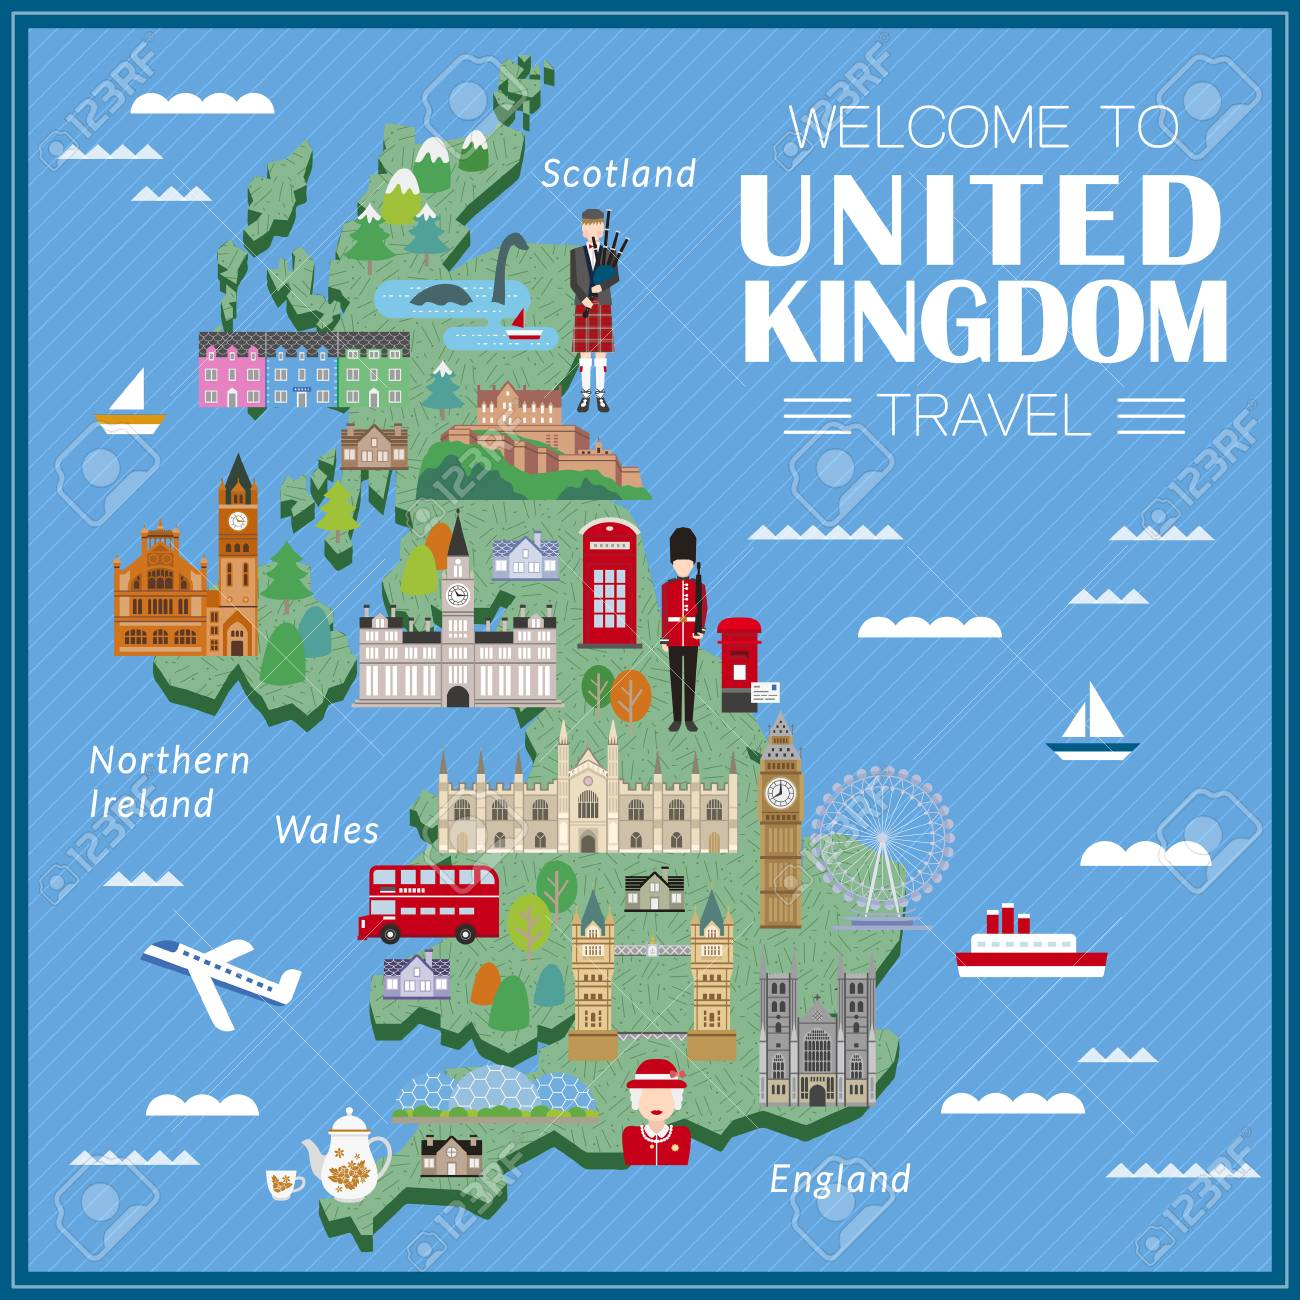 lovely United Kingdom travel map with attractions - 52655213